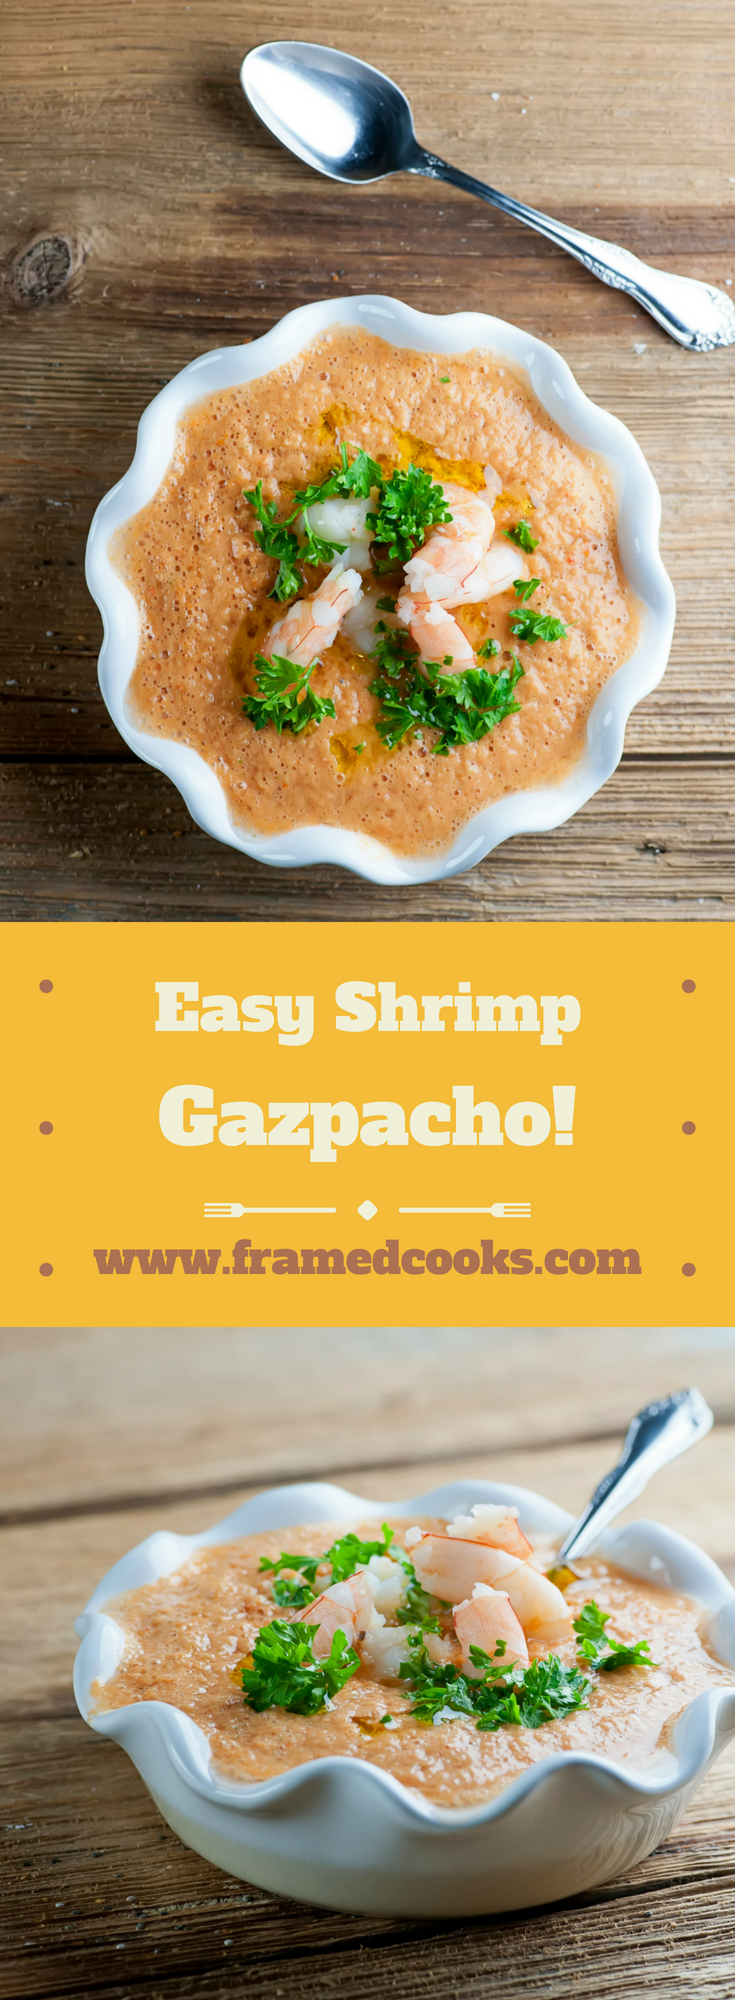 This quick recipe for easy shrimp gazpacho is a perfect summer lunch or light supper when you want a cool, refreshing and delicious soup.